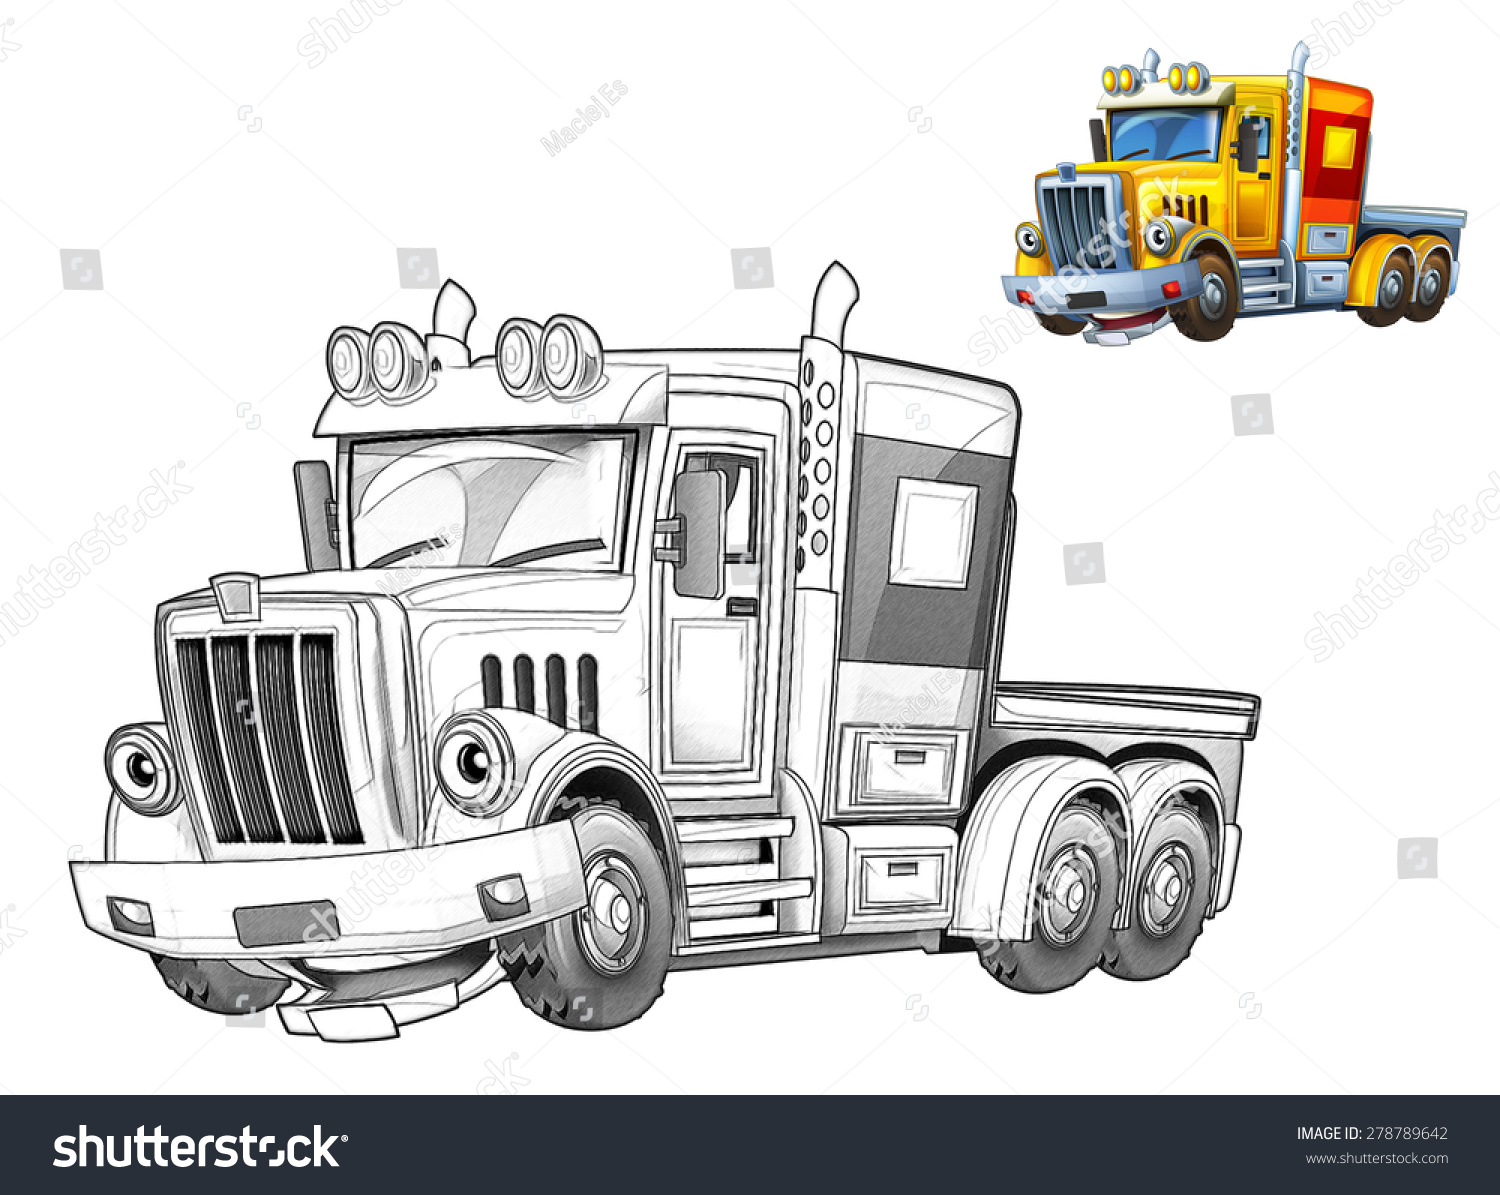 cartoon truck caricature coloring page illustration stock